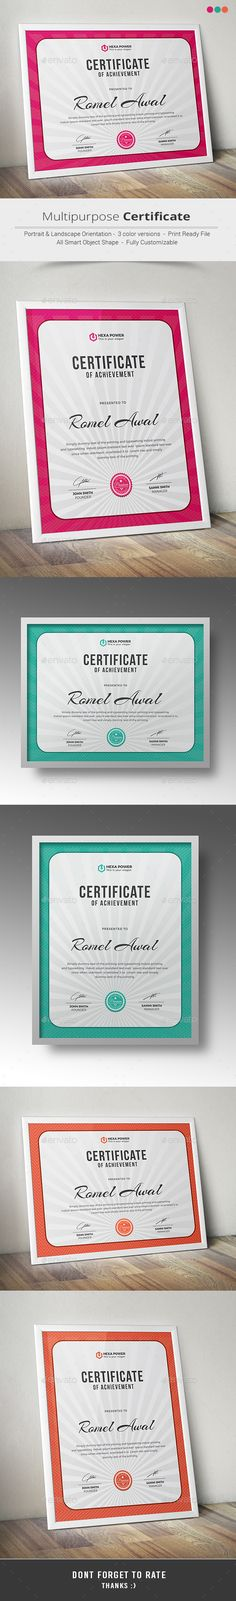 450 Best Stationary Template's images | Templates, Print templates ...